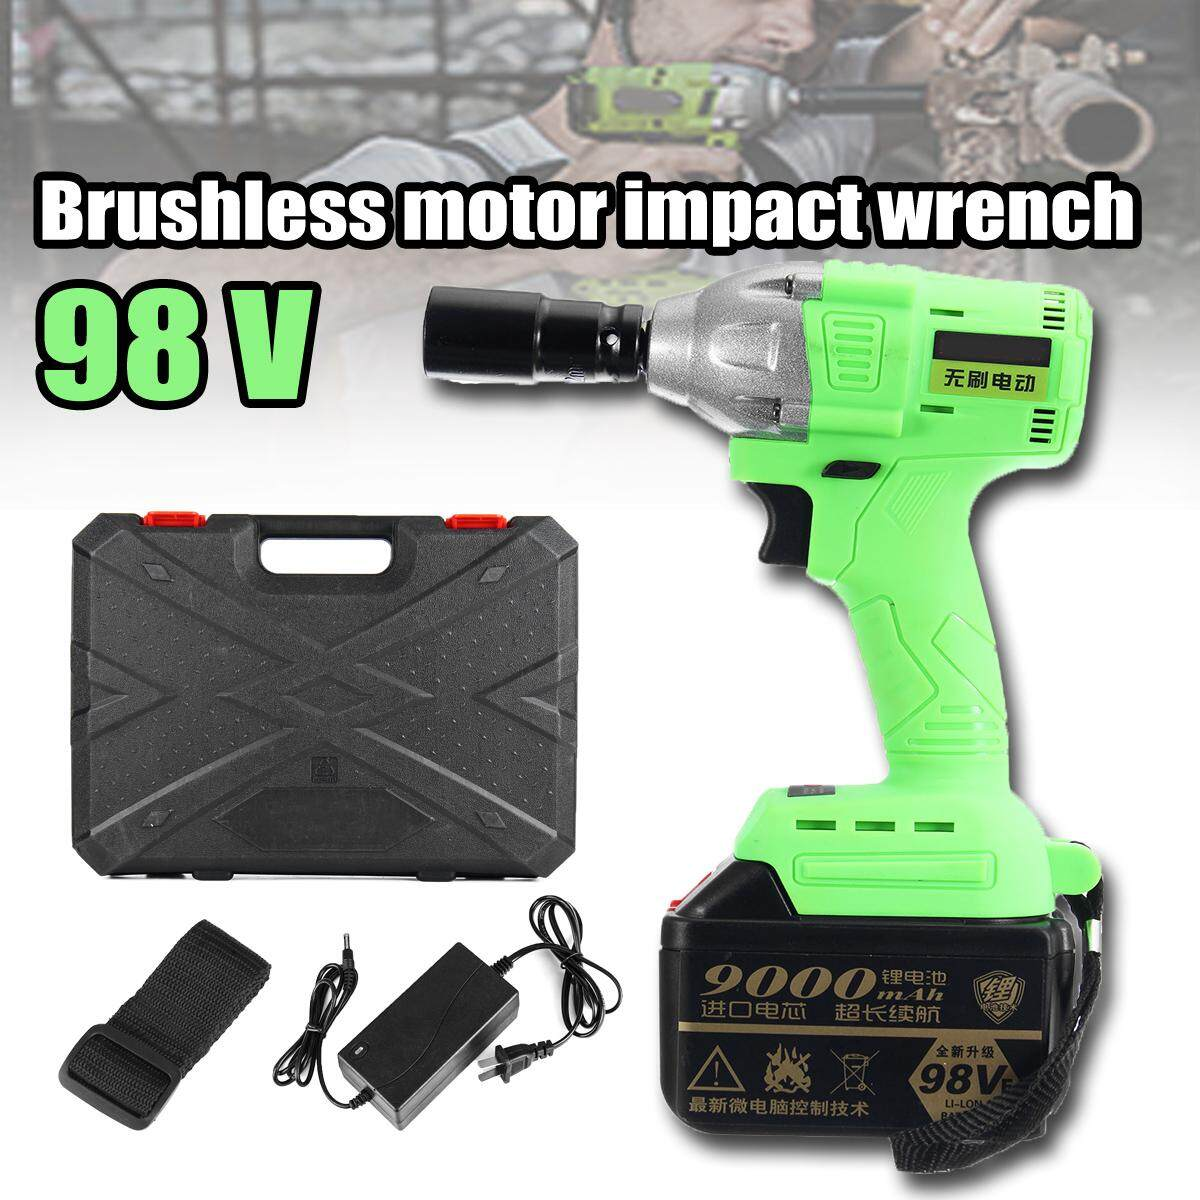 【Free Shipping + Super Deal + Limited Offer】98V Cordless Lithium-Ion Electric Impact Wrench Brushless 3 Speed Torque 520 Nm